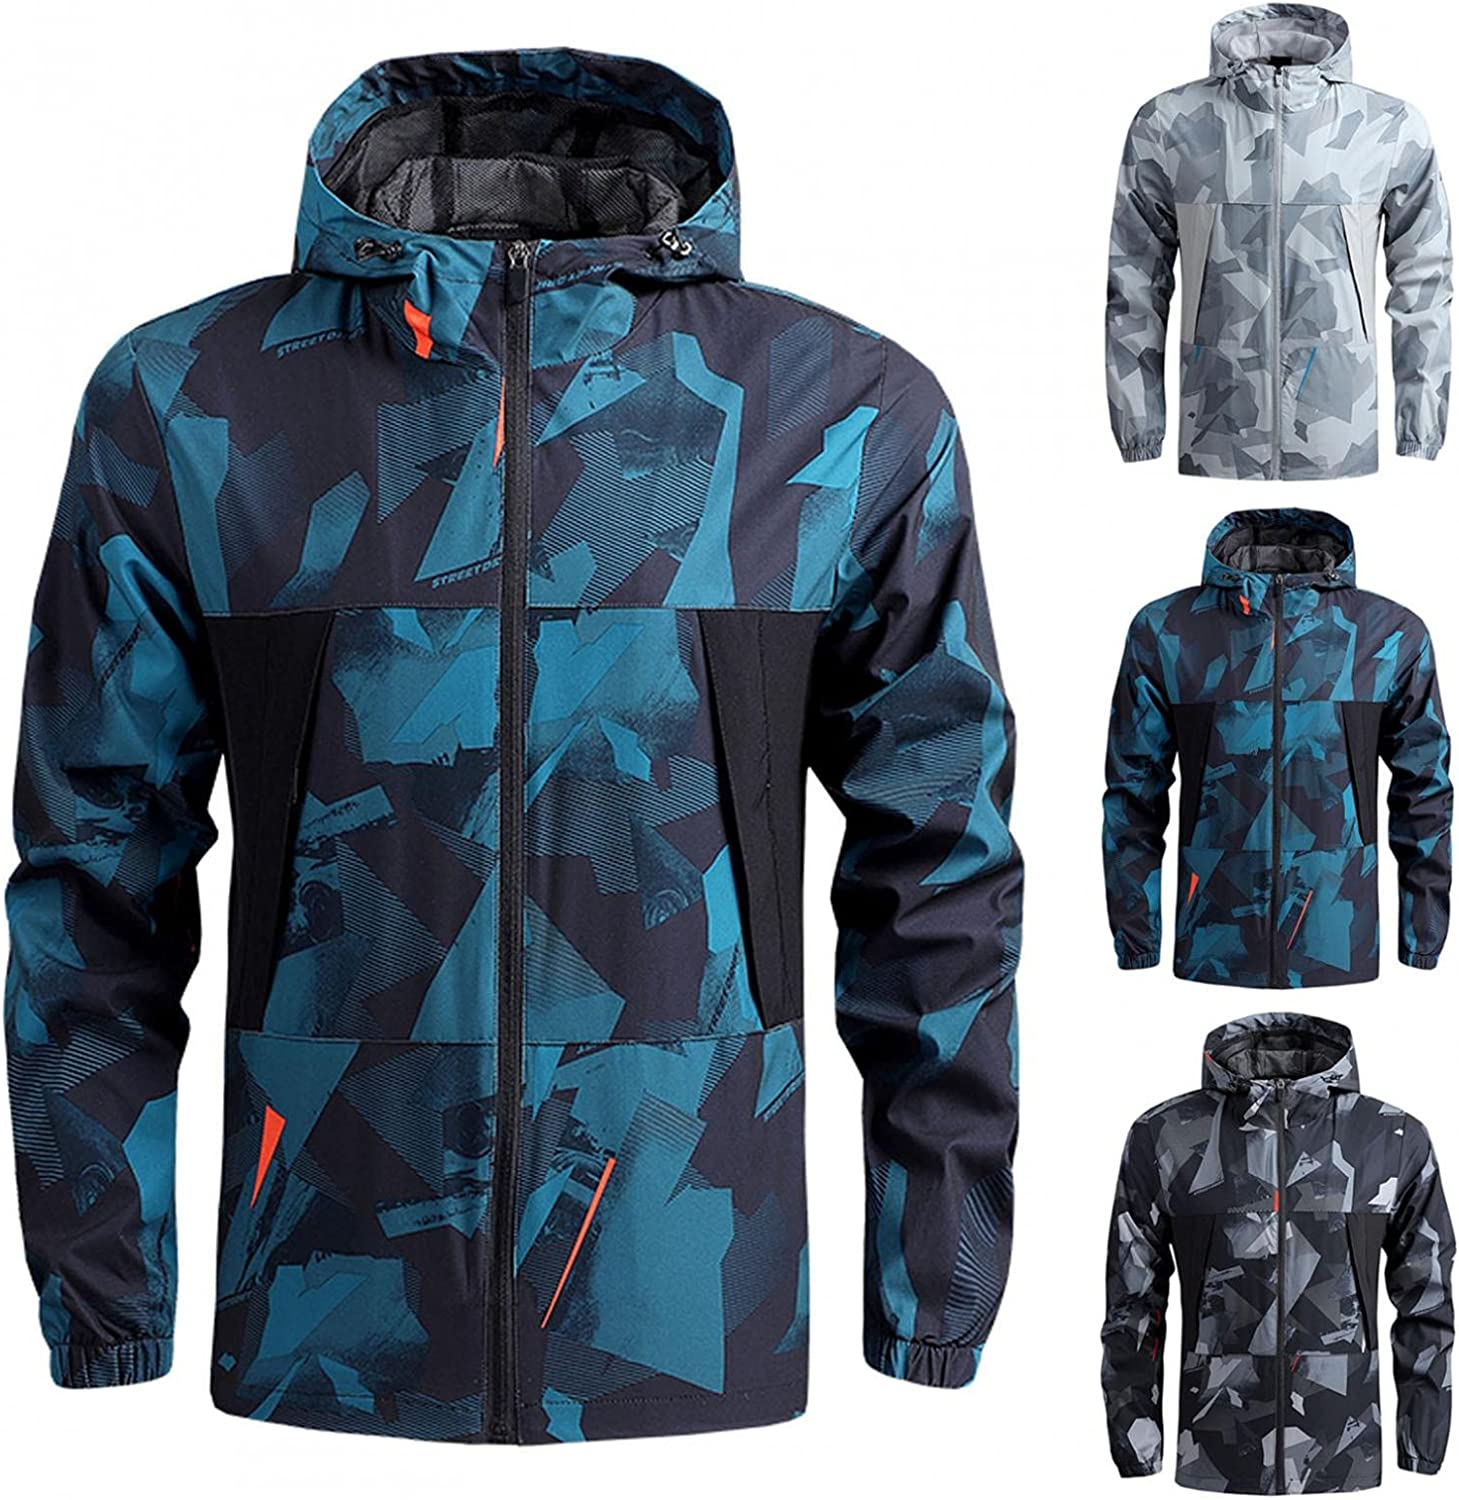 DIOMOR Men's Hooded Jacket Outdoor Hiking Lightweight Breathable Windbreaker Full Zip Coat Quick Dry Sports Jacket Outerwear